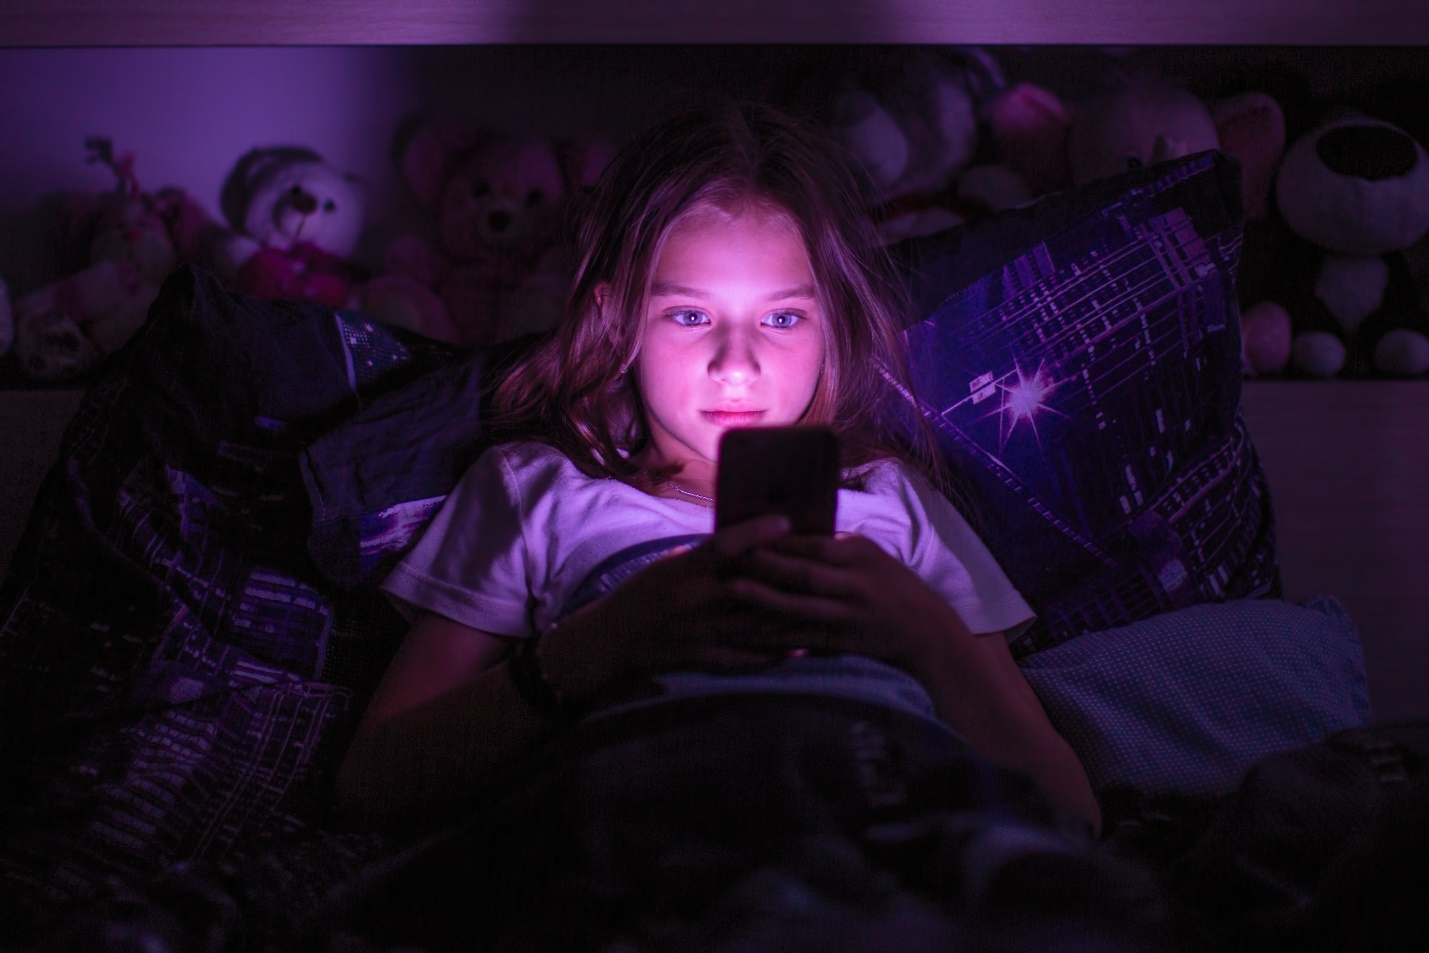 little girl lying under a blanket looking at the smartphone at night